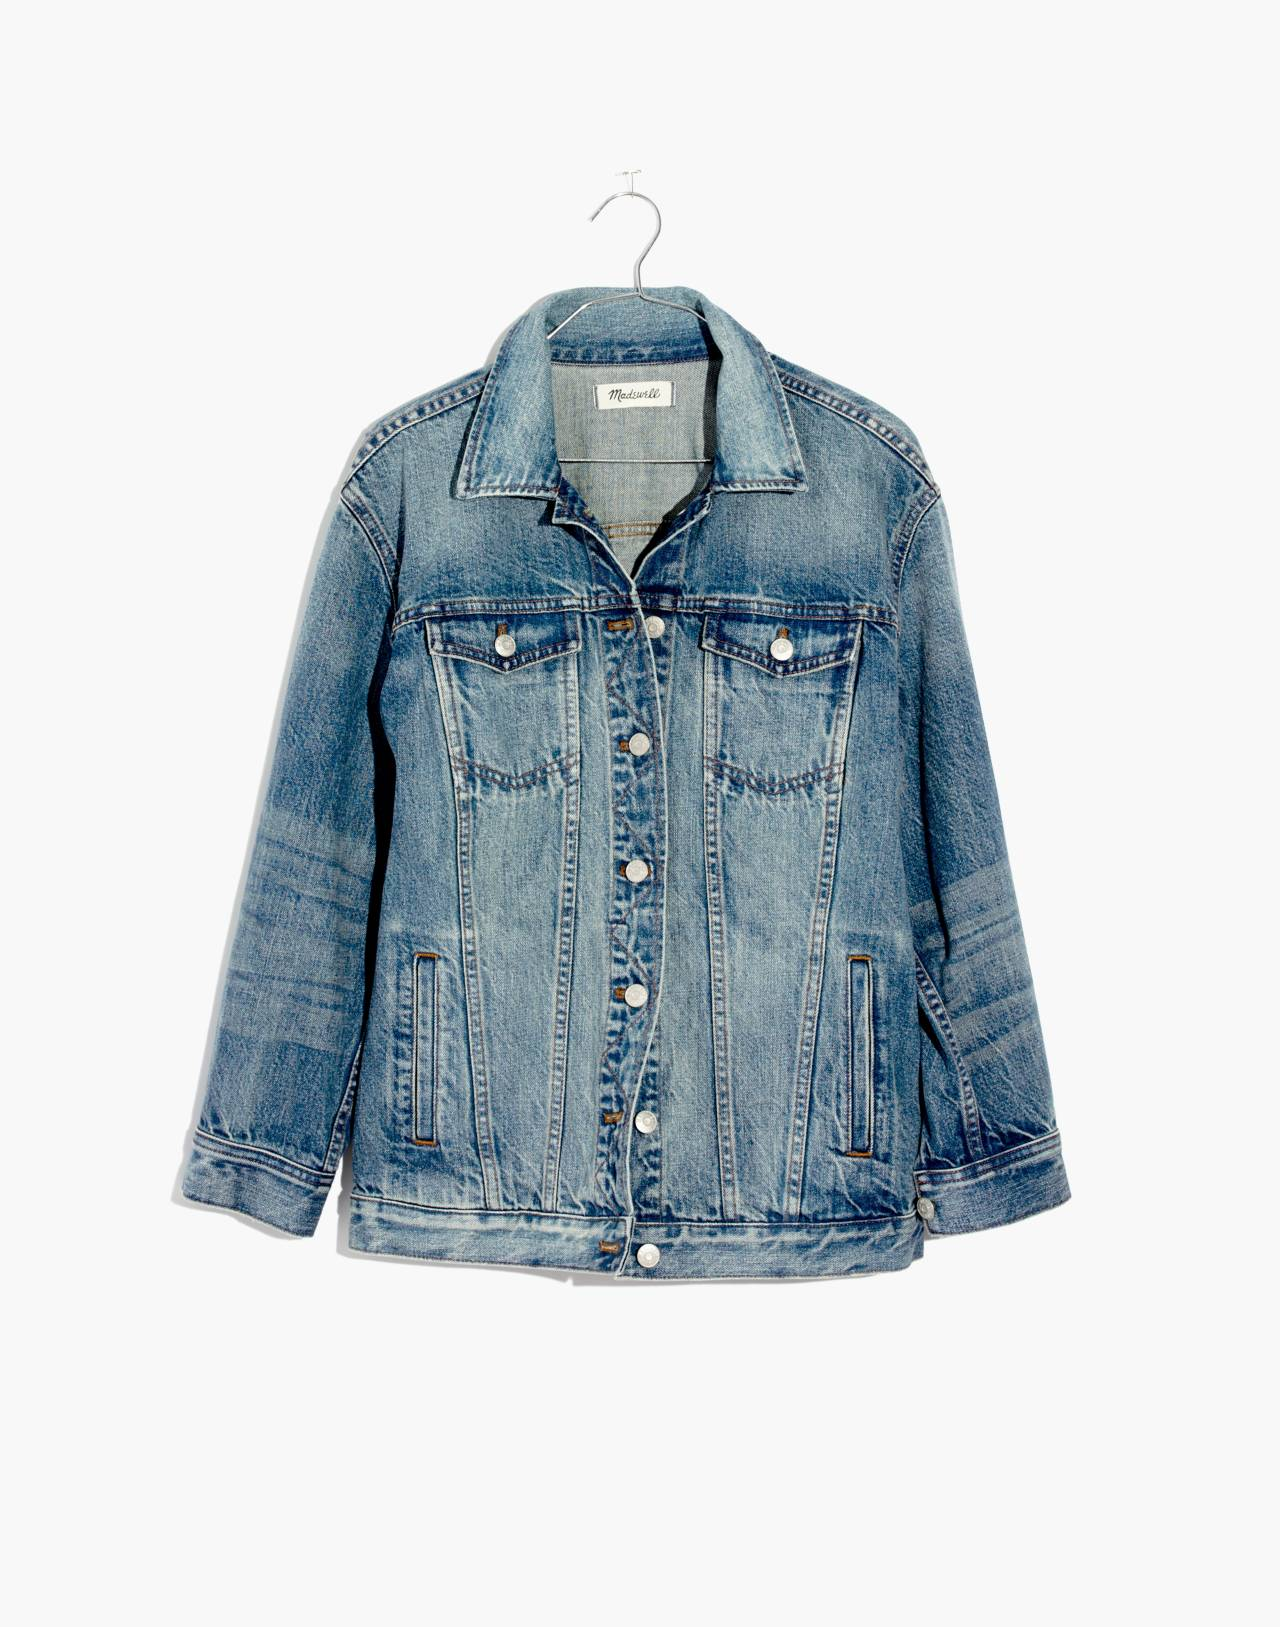 The Oversized Jean Jacket in Capstone Wash in capstone wash image 4